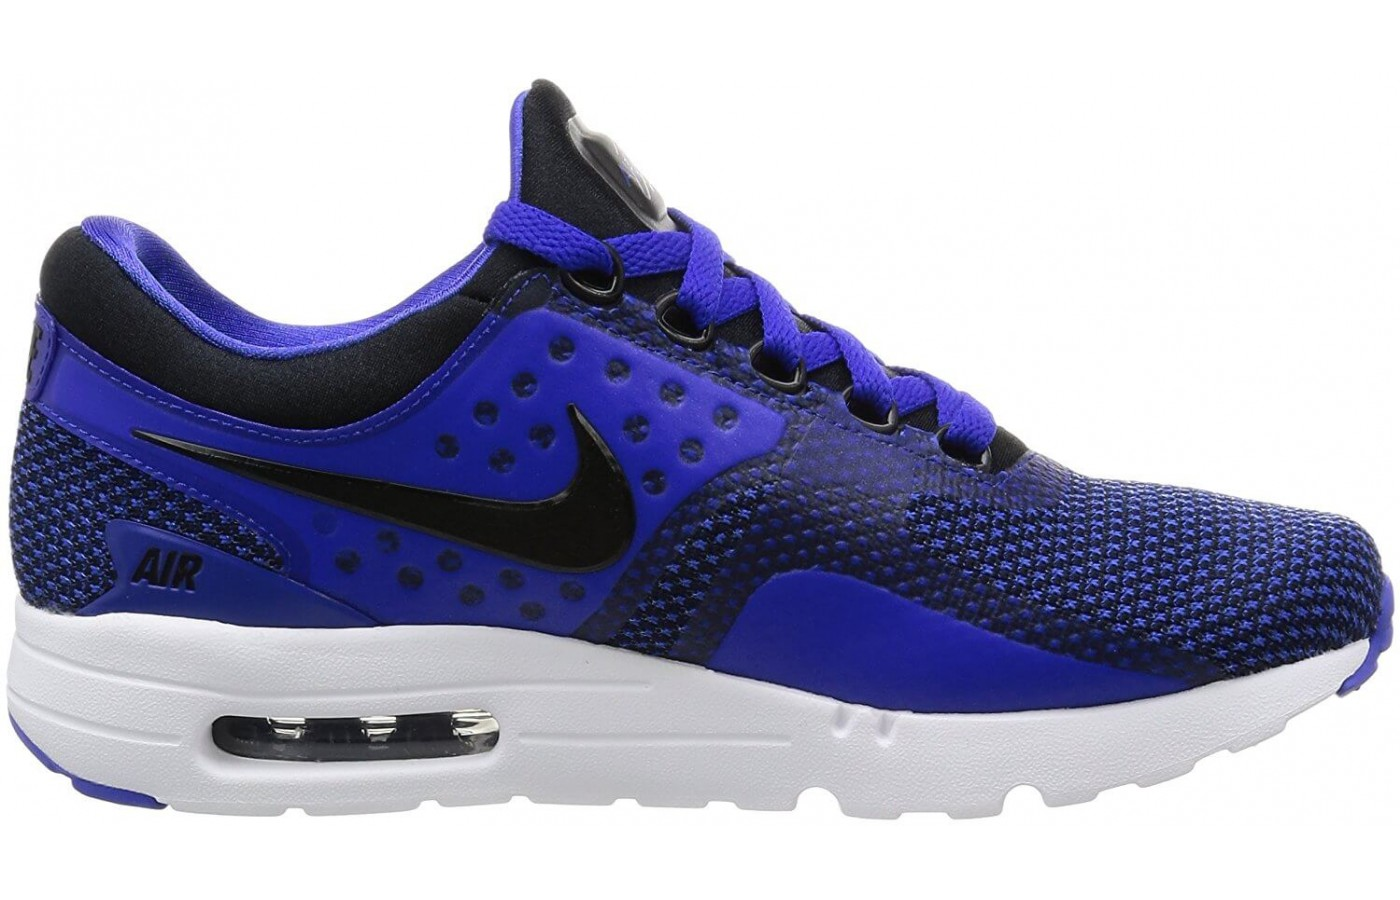 a8b4acaee0dac ... The Nike Air Max Zero Essential is a lightweight cushioned lifestyle  shoe